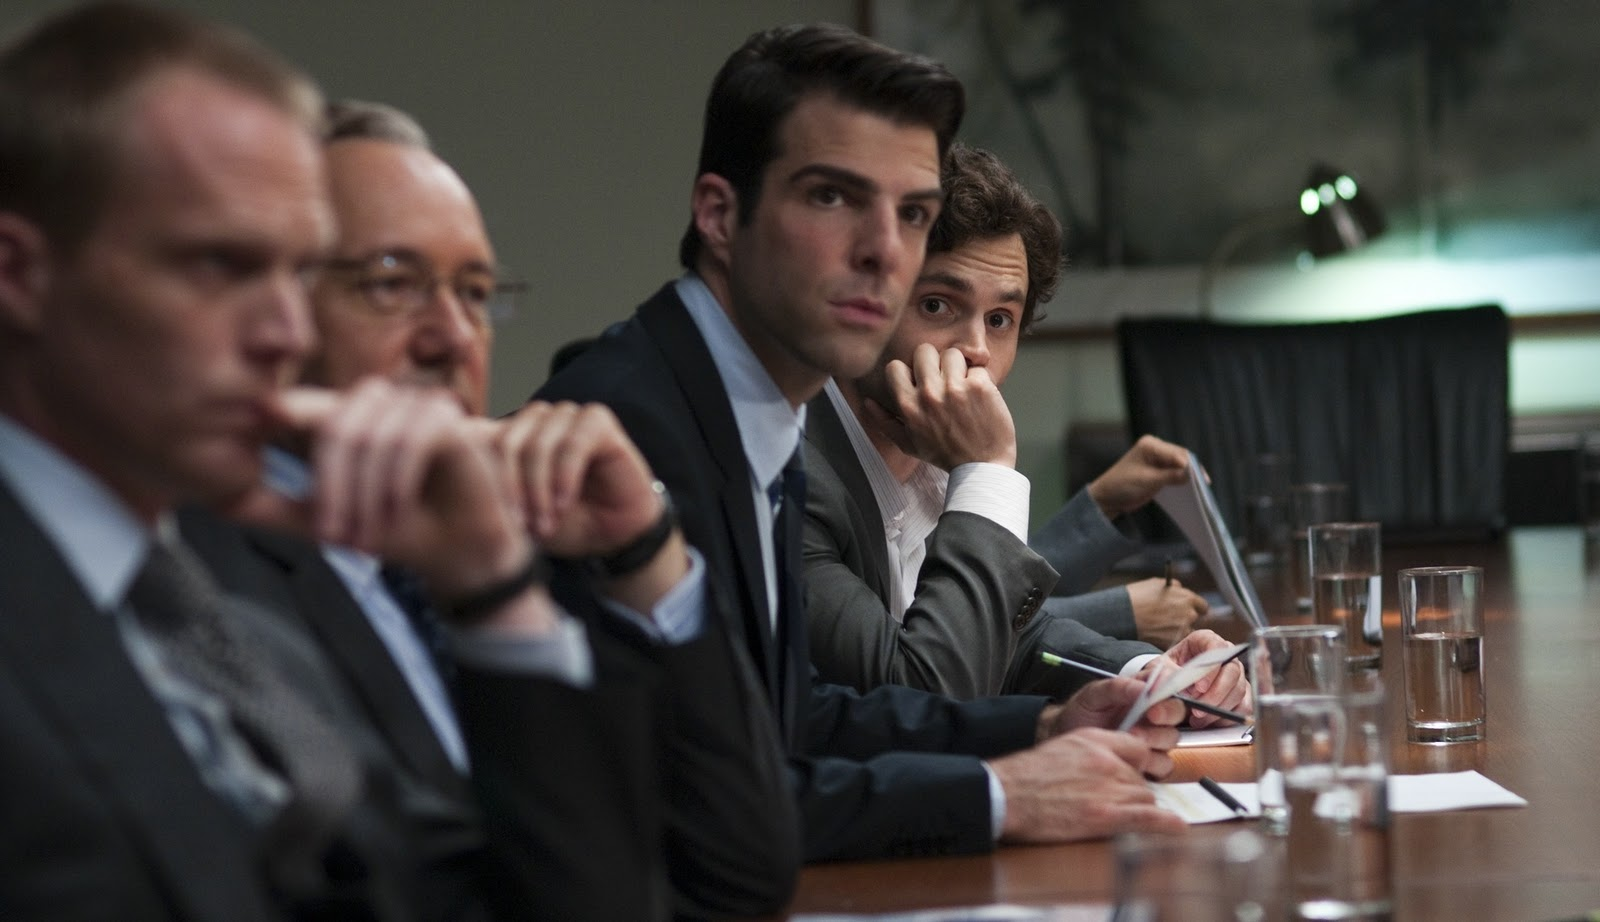 Kevin Spacey, Penn Badgley, Paul Bettany, and Zachary Quinto in Margin Call (2011)